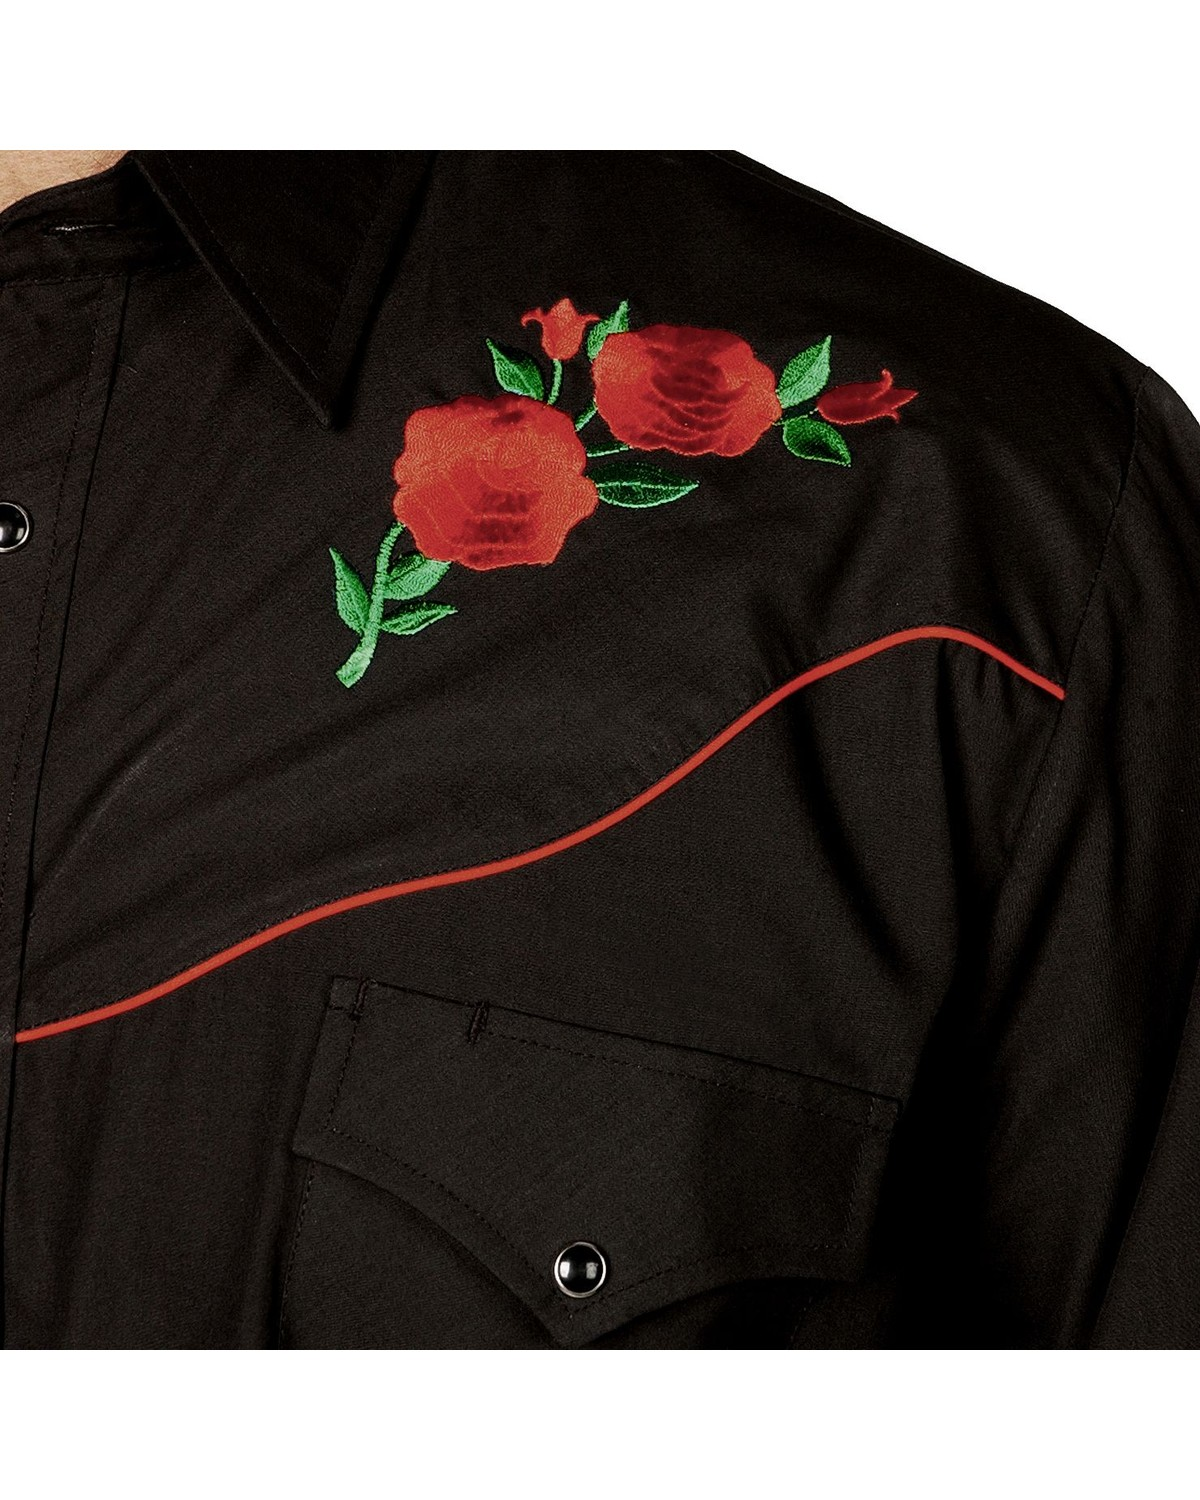 0c878e4ec3 Ely Cattleman Embroidered Rose Design Western Shirt - Country Outfitter